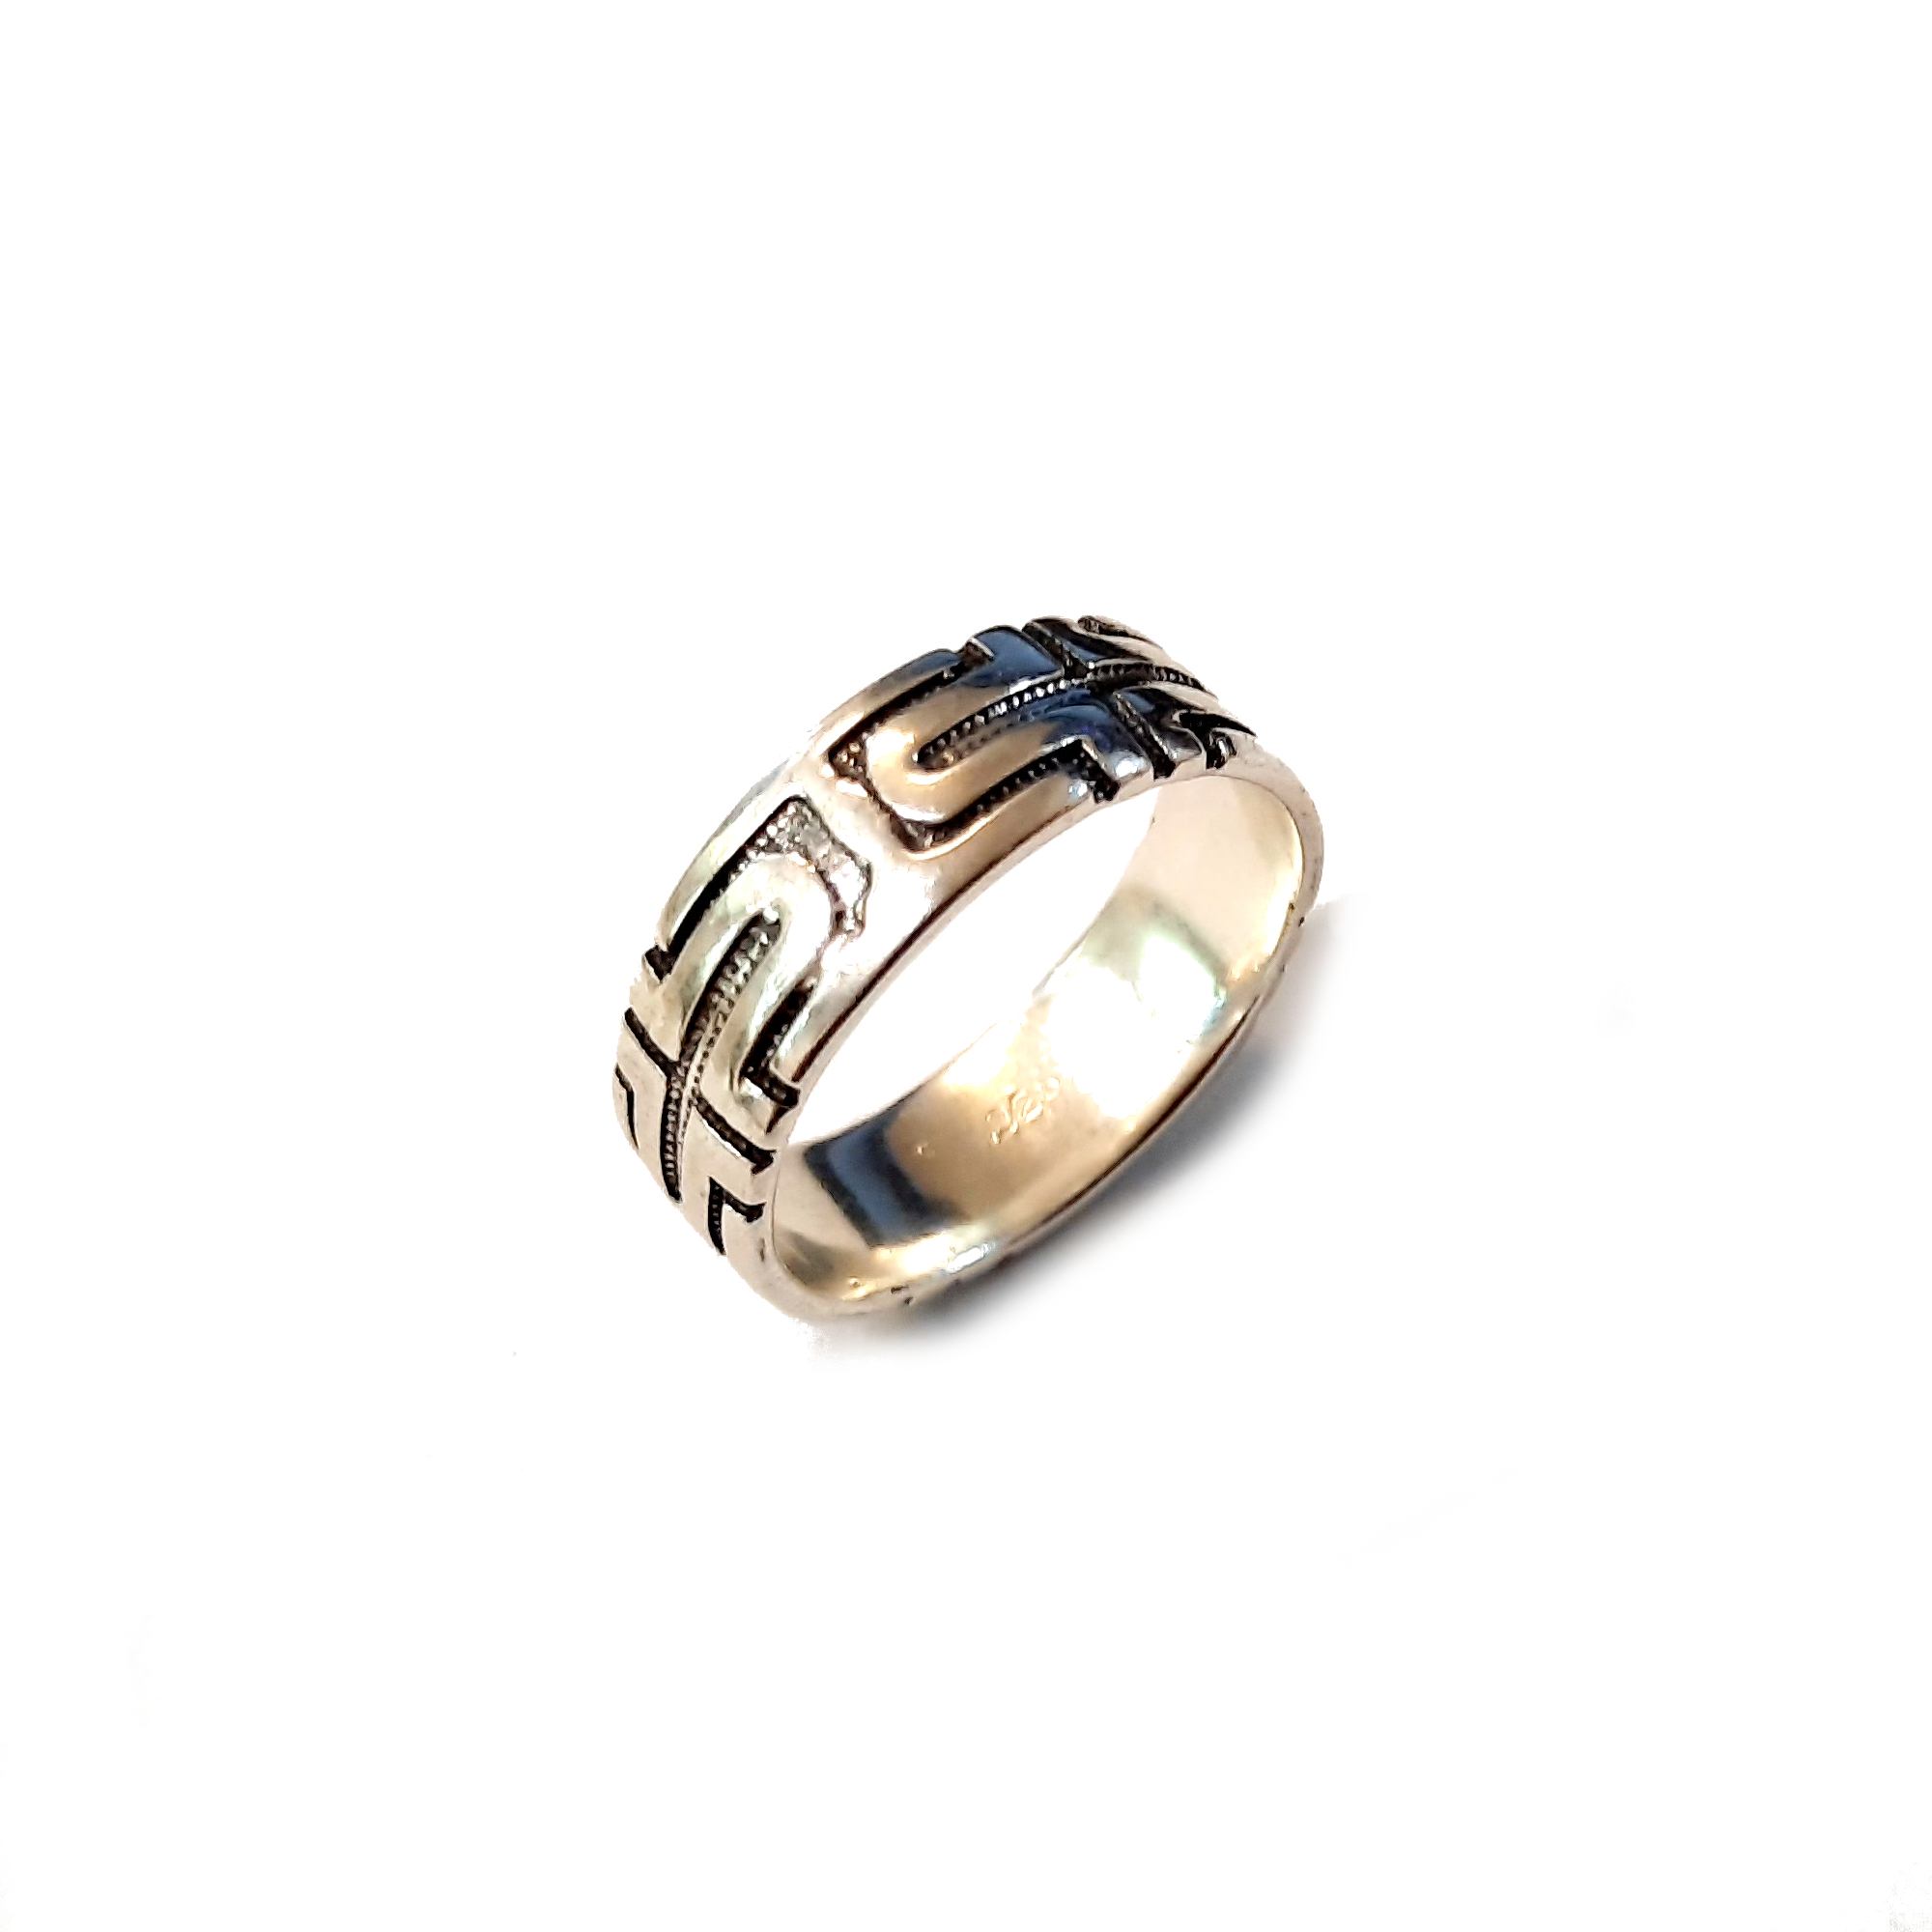 Silver ring - R002166